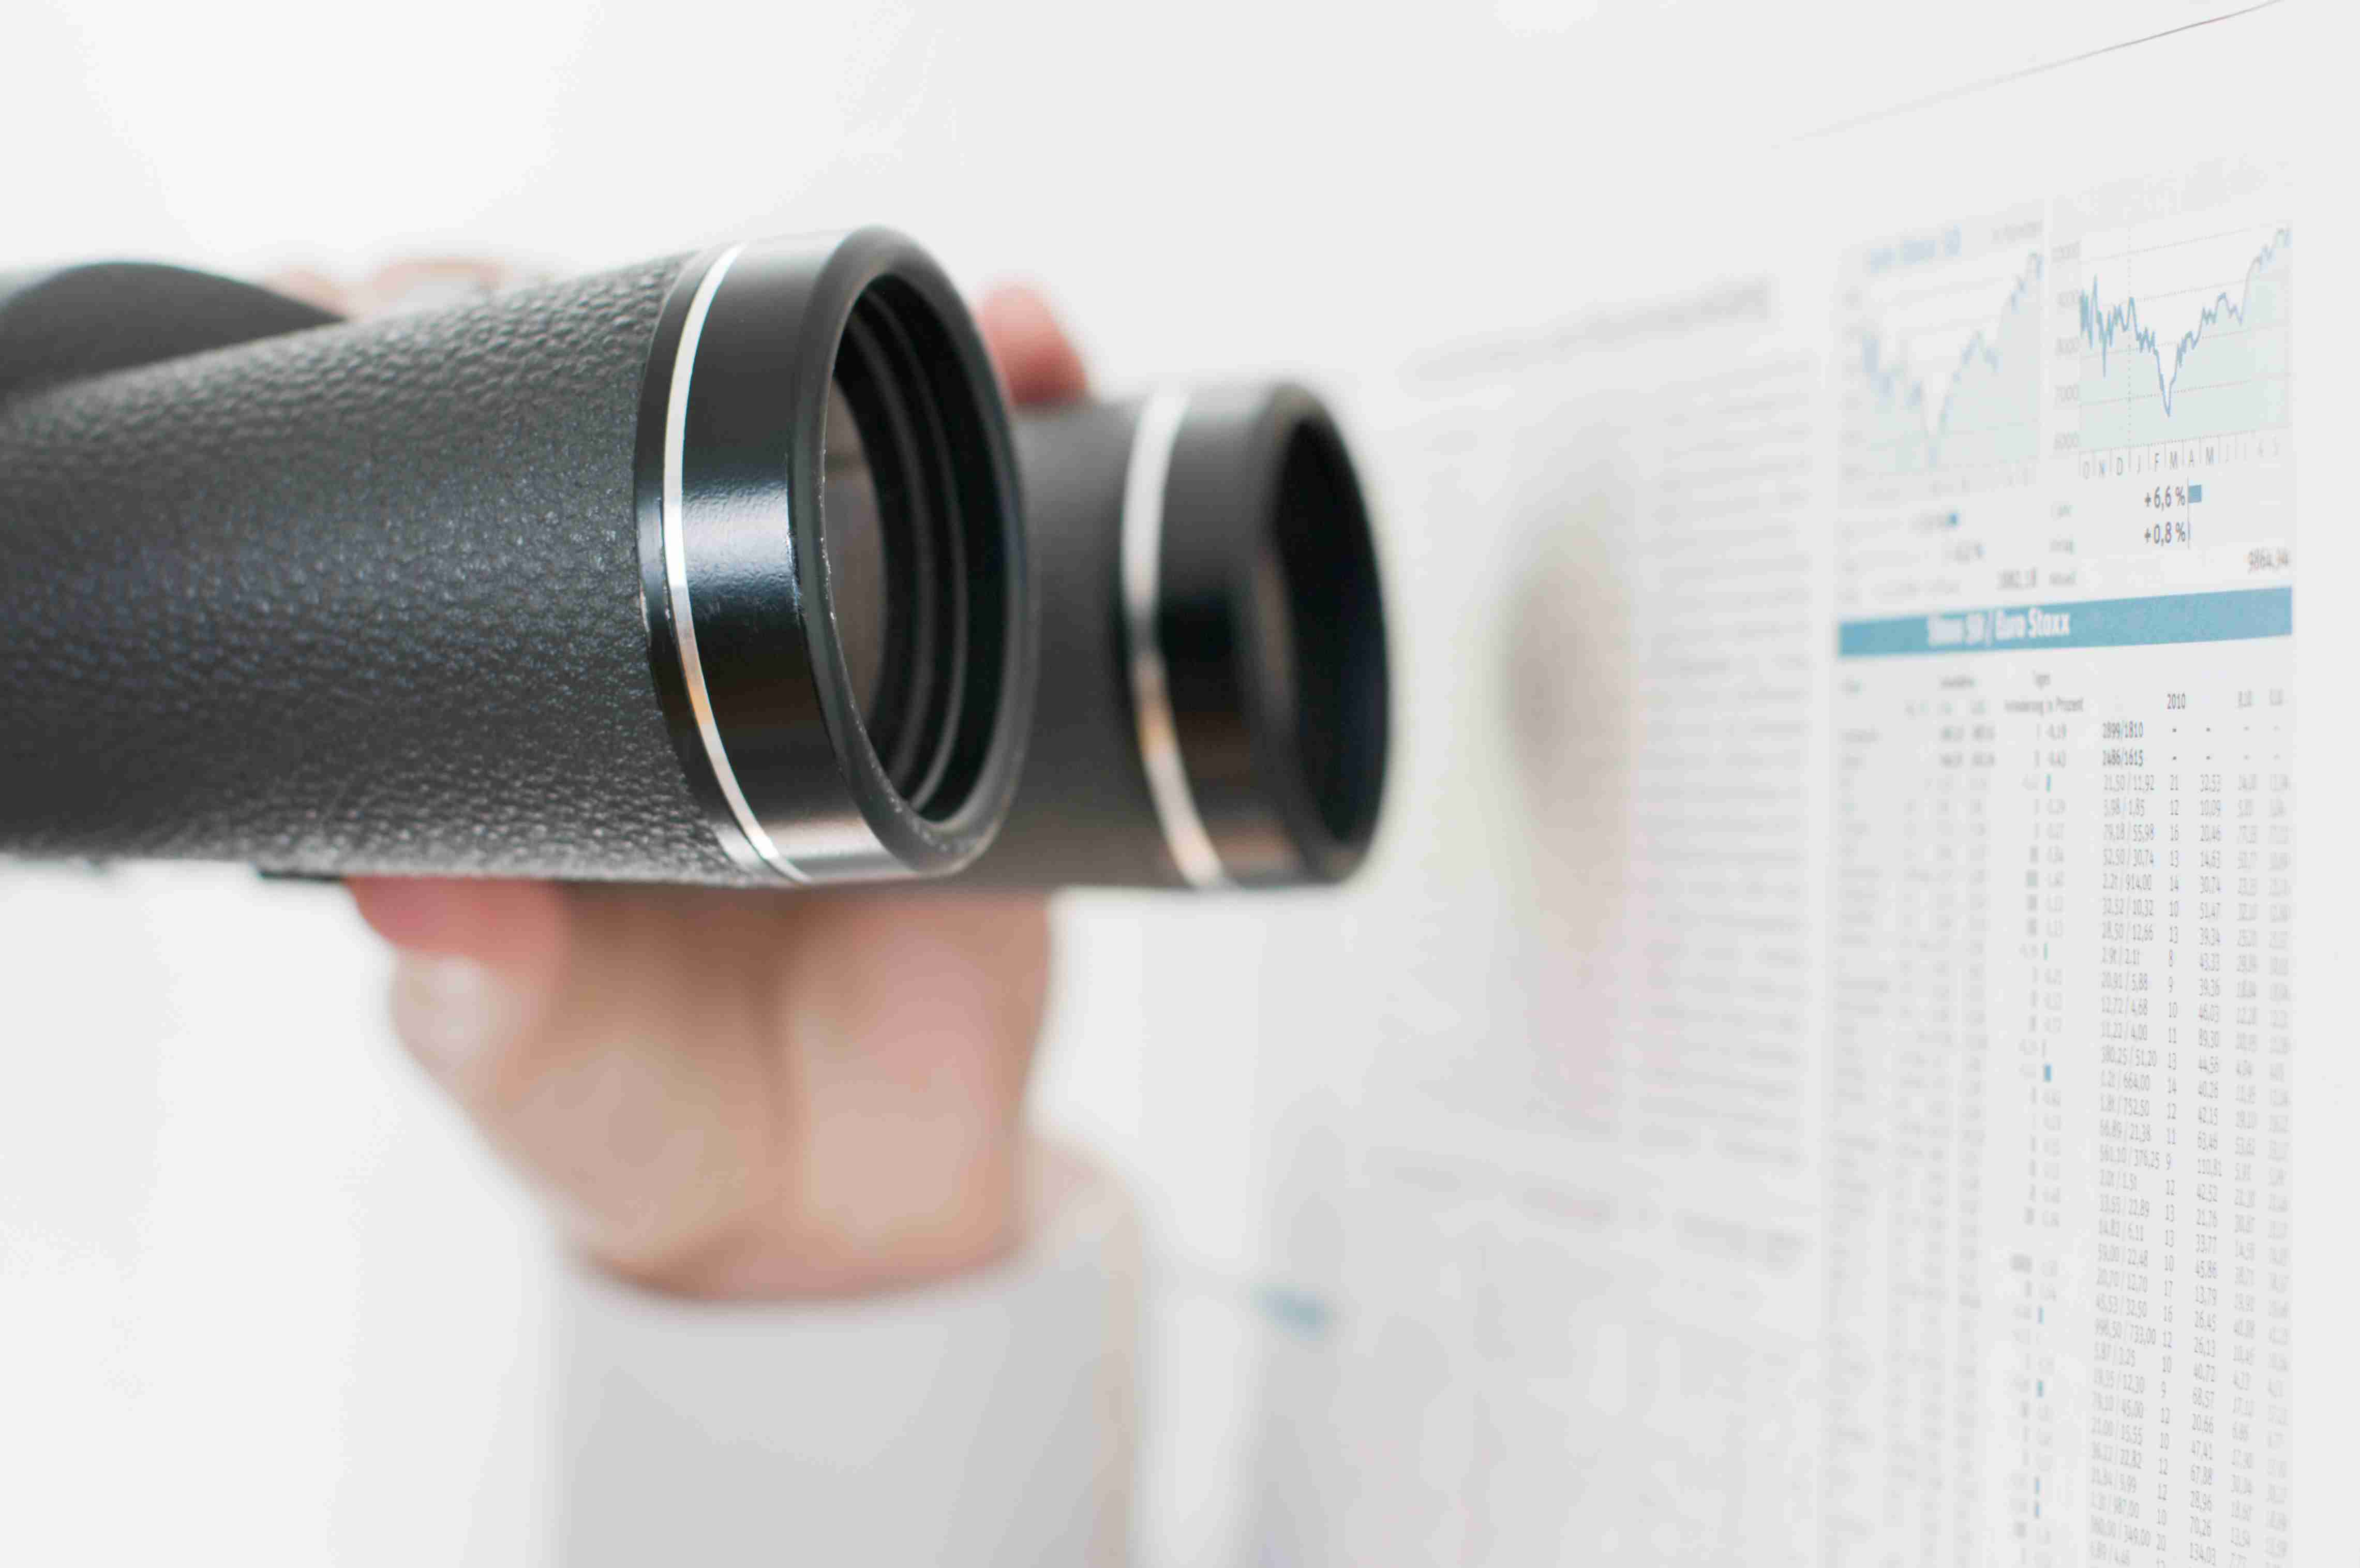 Binoculars peering into financial charts to see how benefit choices turned out